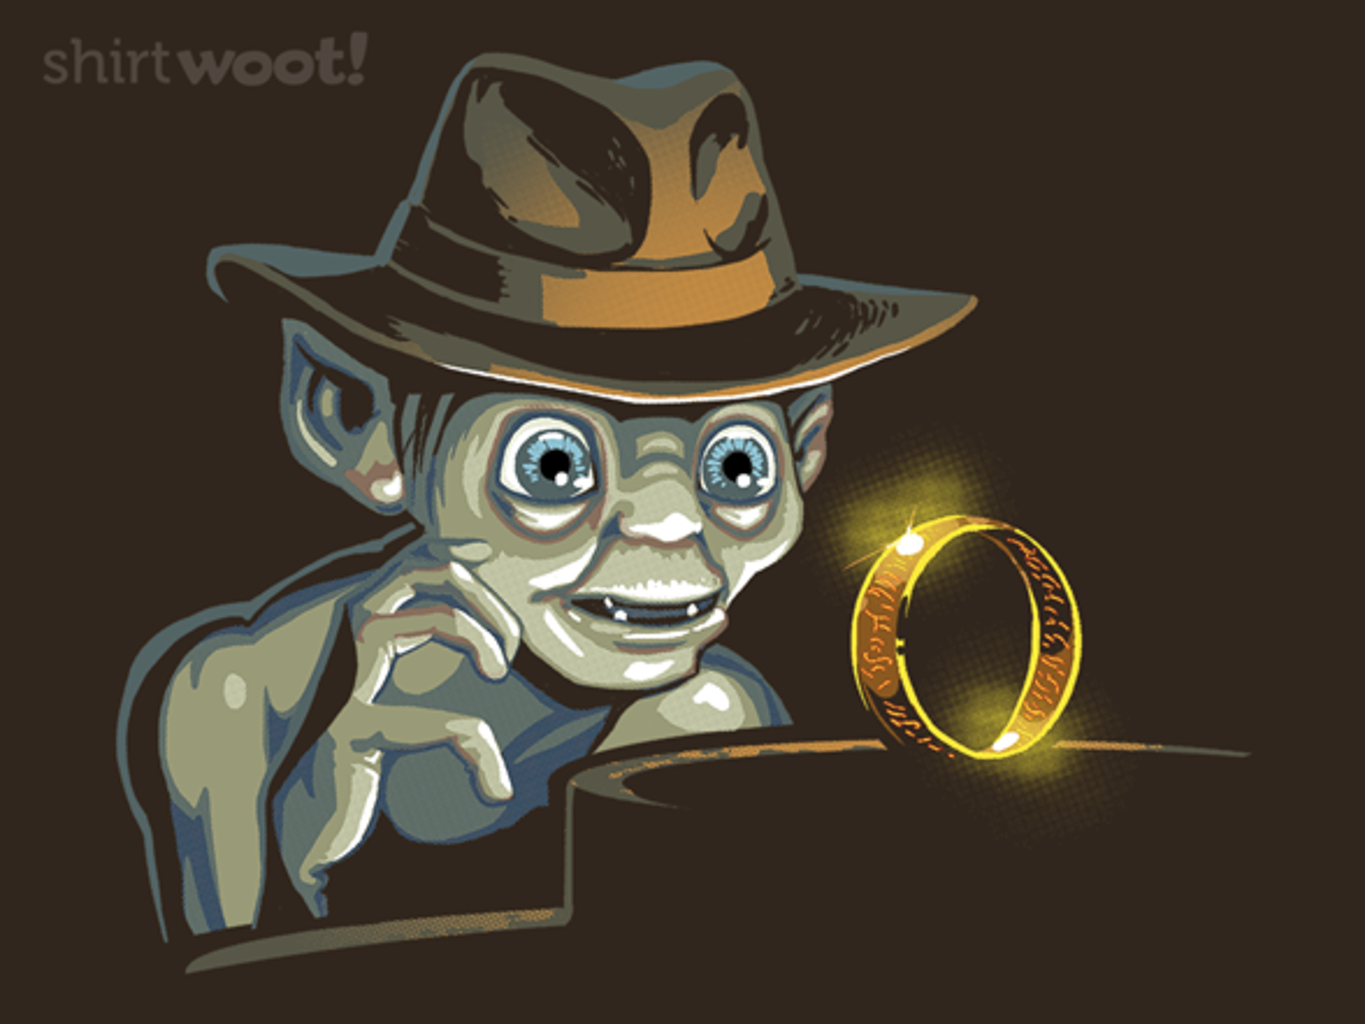 Woot!: Raiders of the Lost Precious